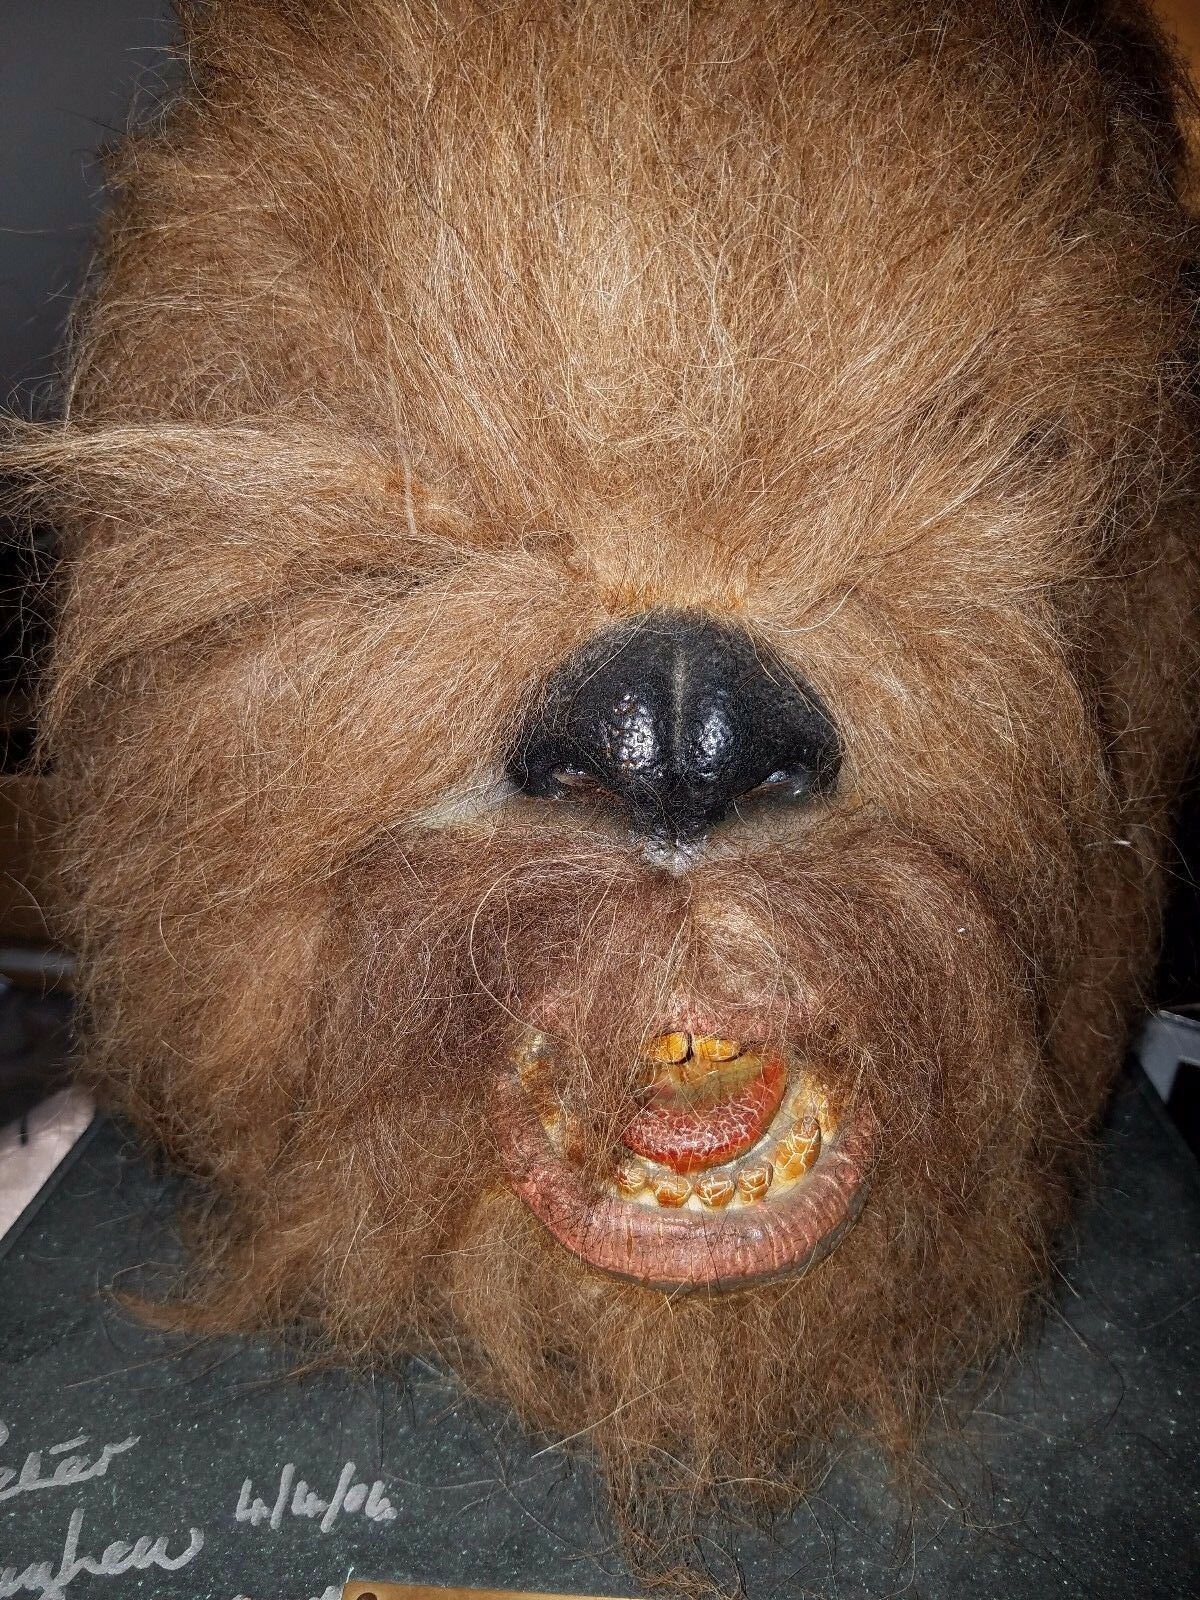 STAR WARS Chewbacca Head  Mask  Bust 1996 Illusive Originals 773 of 7500 SIGNED